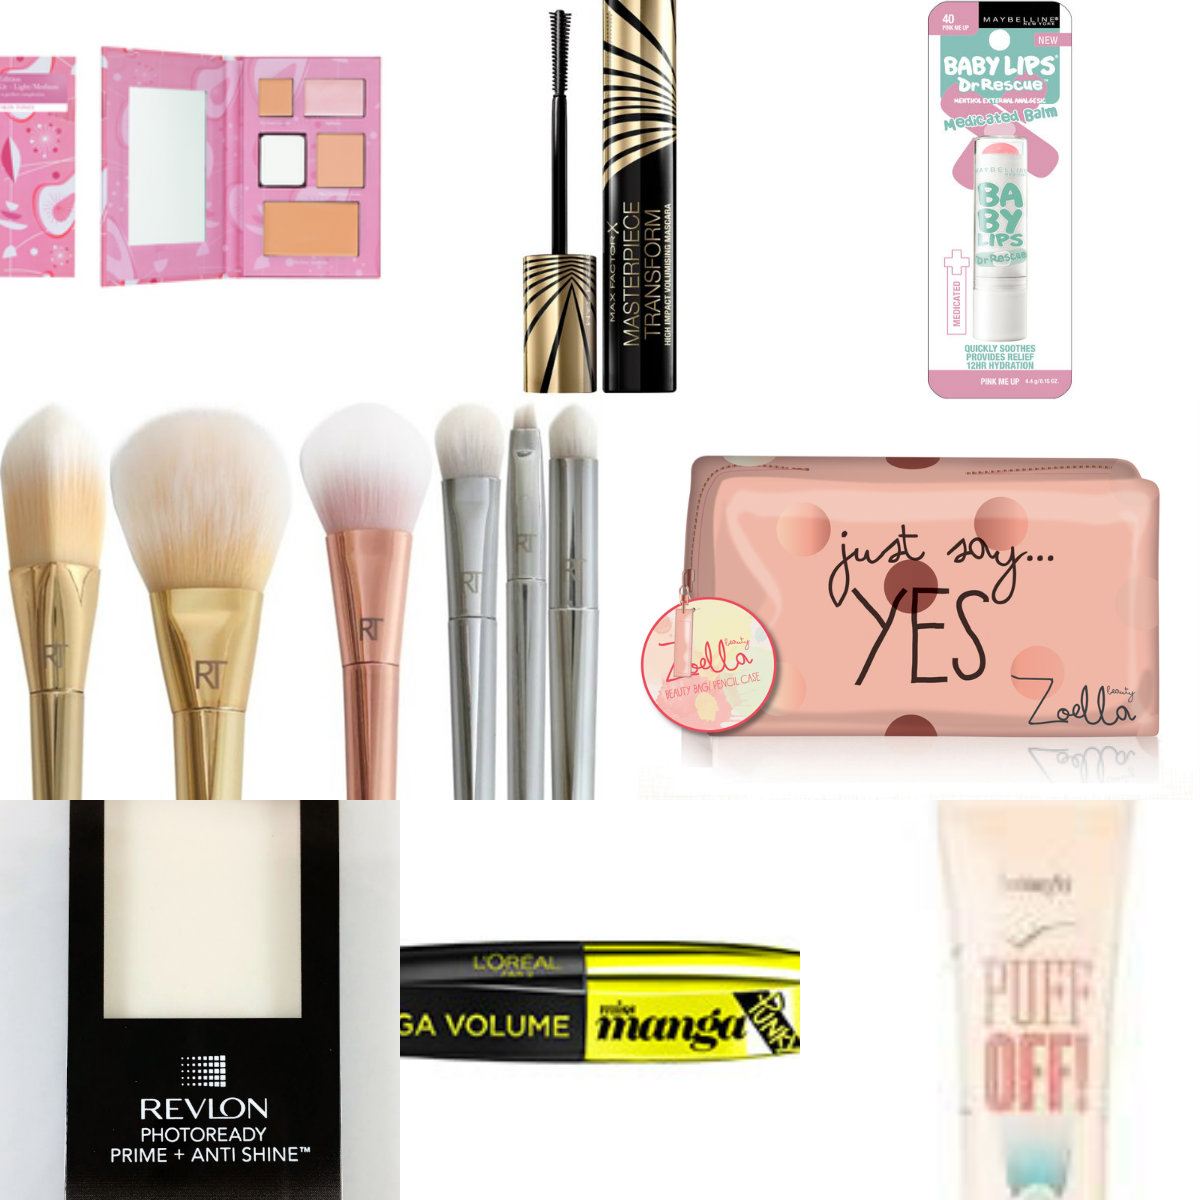 What's New at the Drugstore UK